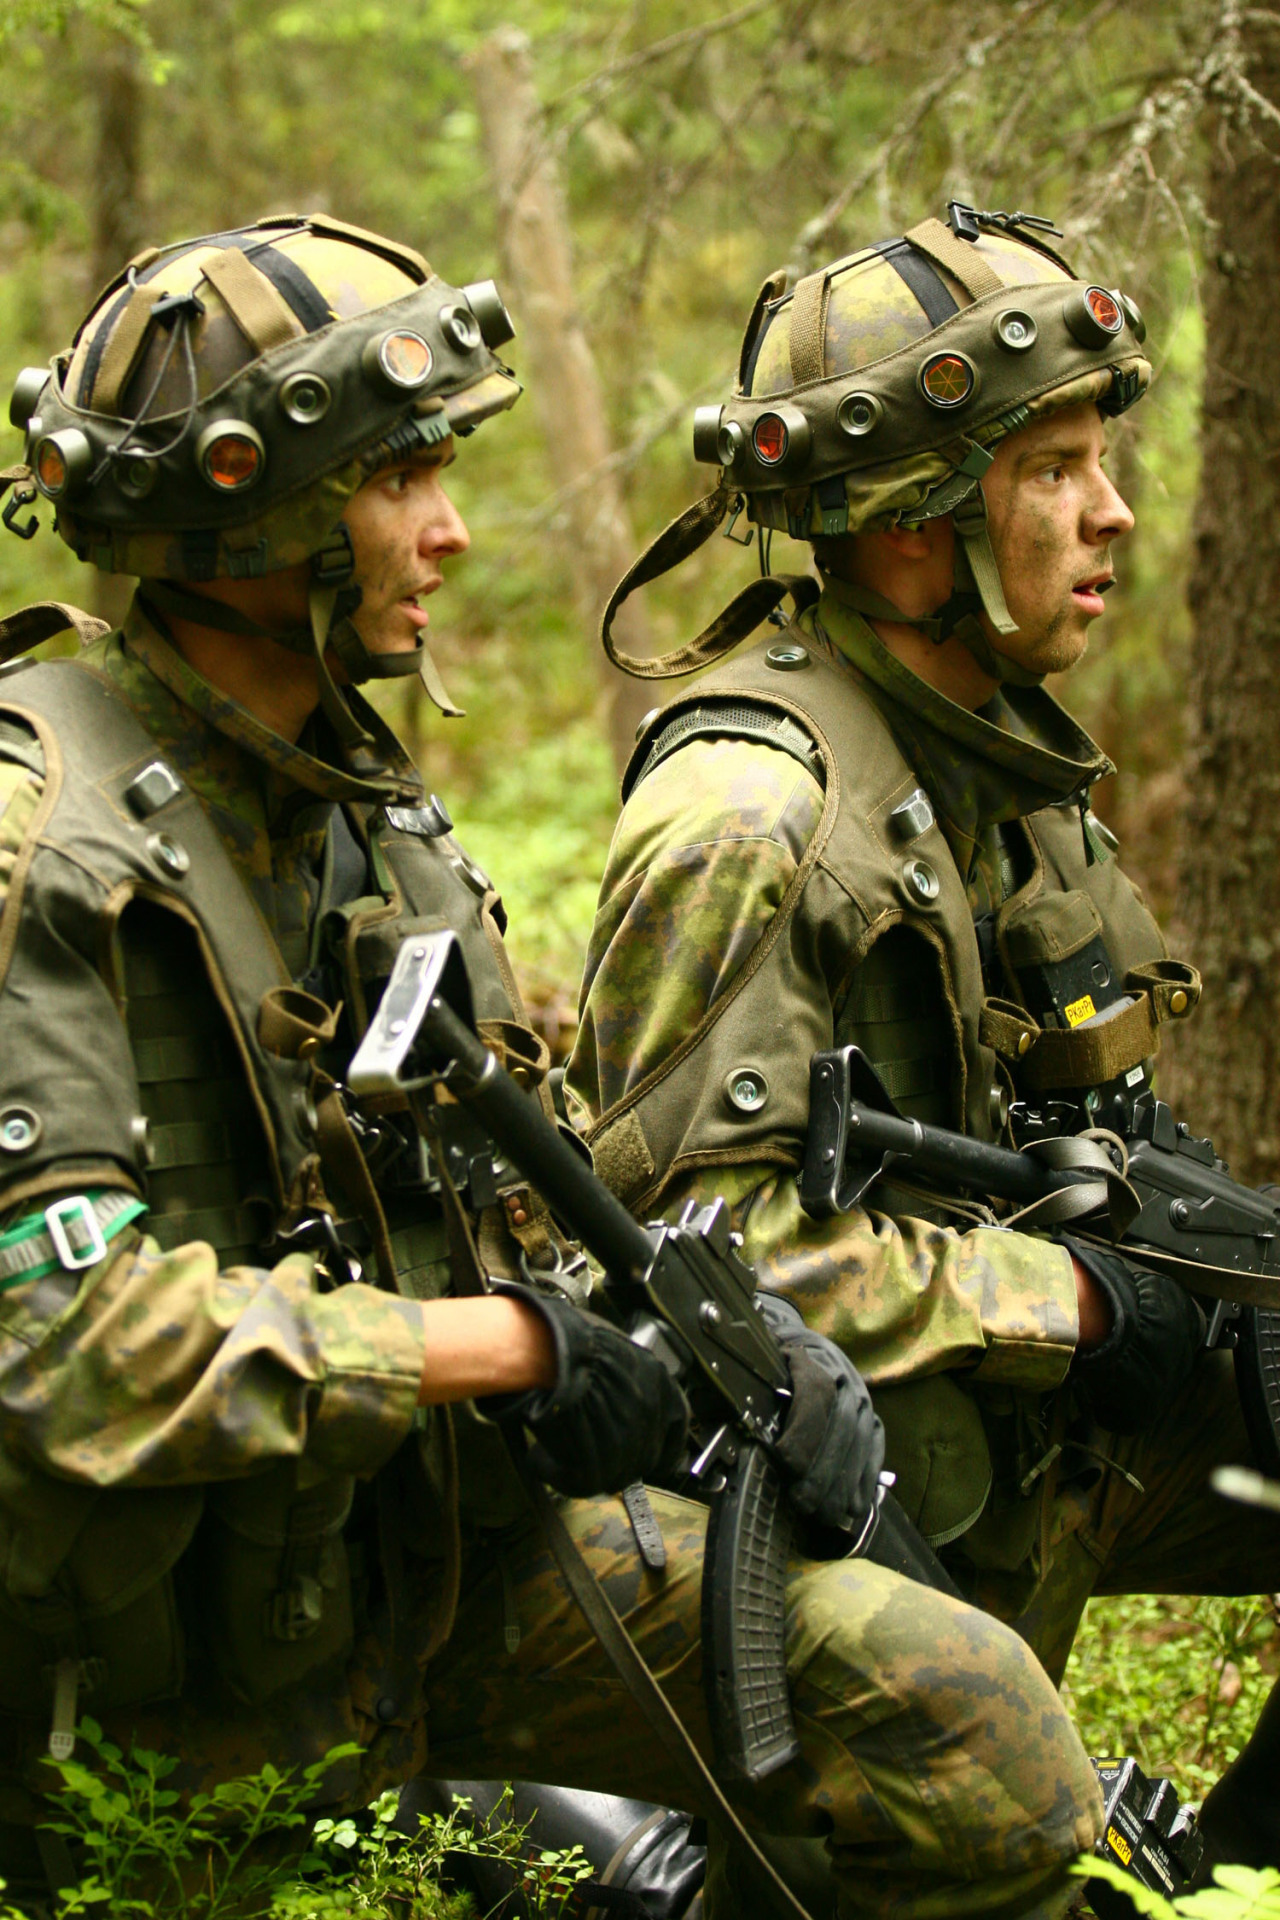 heavilyarmedhippie:  ohwasteland:  suomisodassa:  Finnish soldiers during military exercise ITÄ10  Can someone explain what that stuff on the helmets is, and how it works?  laser tag sensors. the guns are loaded with blanks- the blanks trigger the box at the end of the barrel, which shoots a laser beam. if it hits one of the flashlight-looking things on the helmets and vests, it makes a really loud and sustained beep, and lets the grader know that that guy just got blasted. expensive as fuck.  Perhaps expensive, but I would imagine it's cheaper than simunition, with a more realistic range for the weapons as well (ignoring the fact that lasers don't suffer from bullet drop or windage).